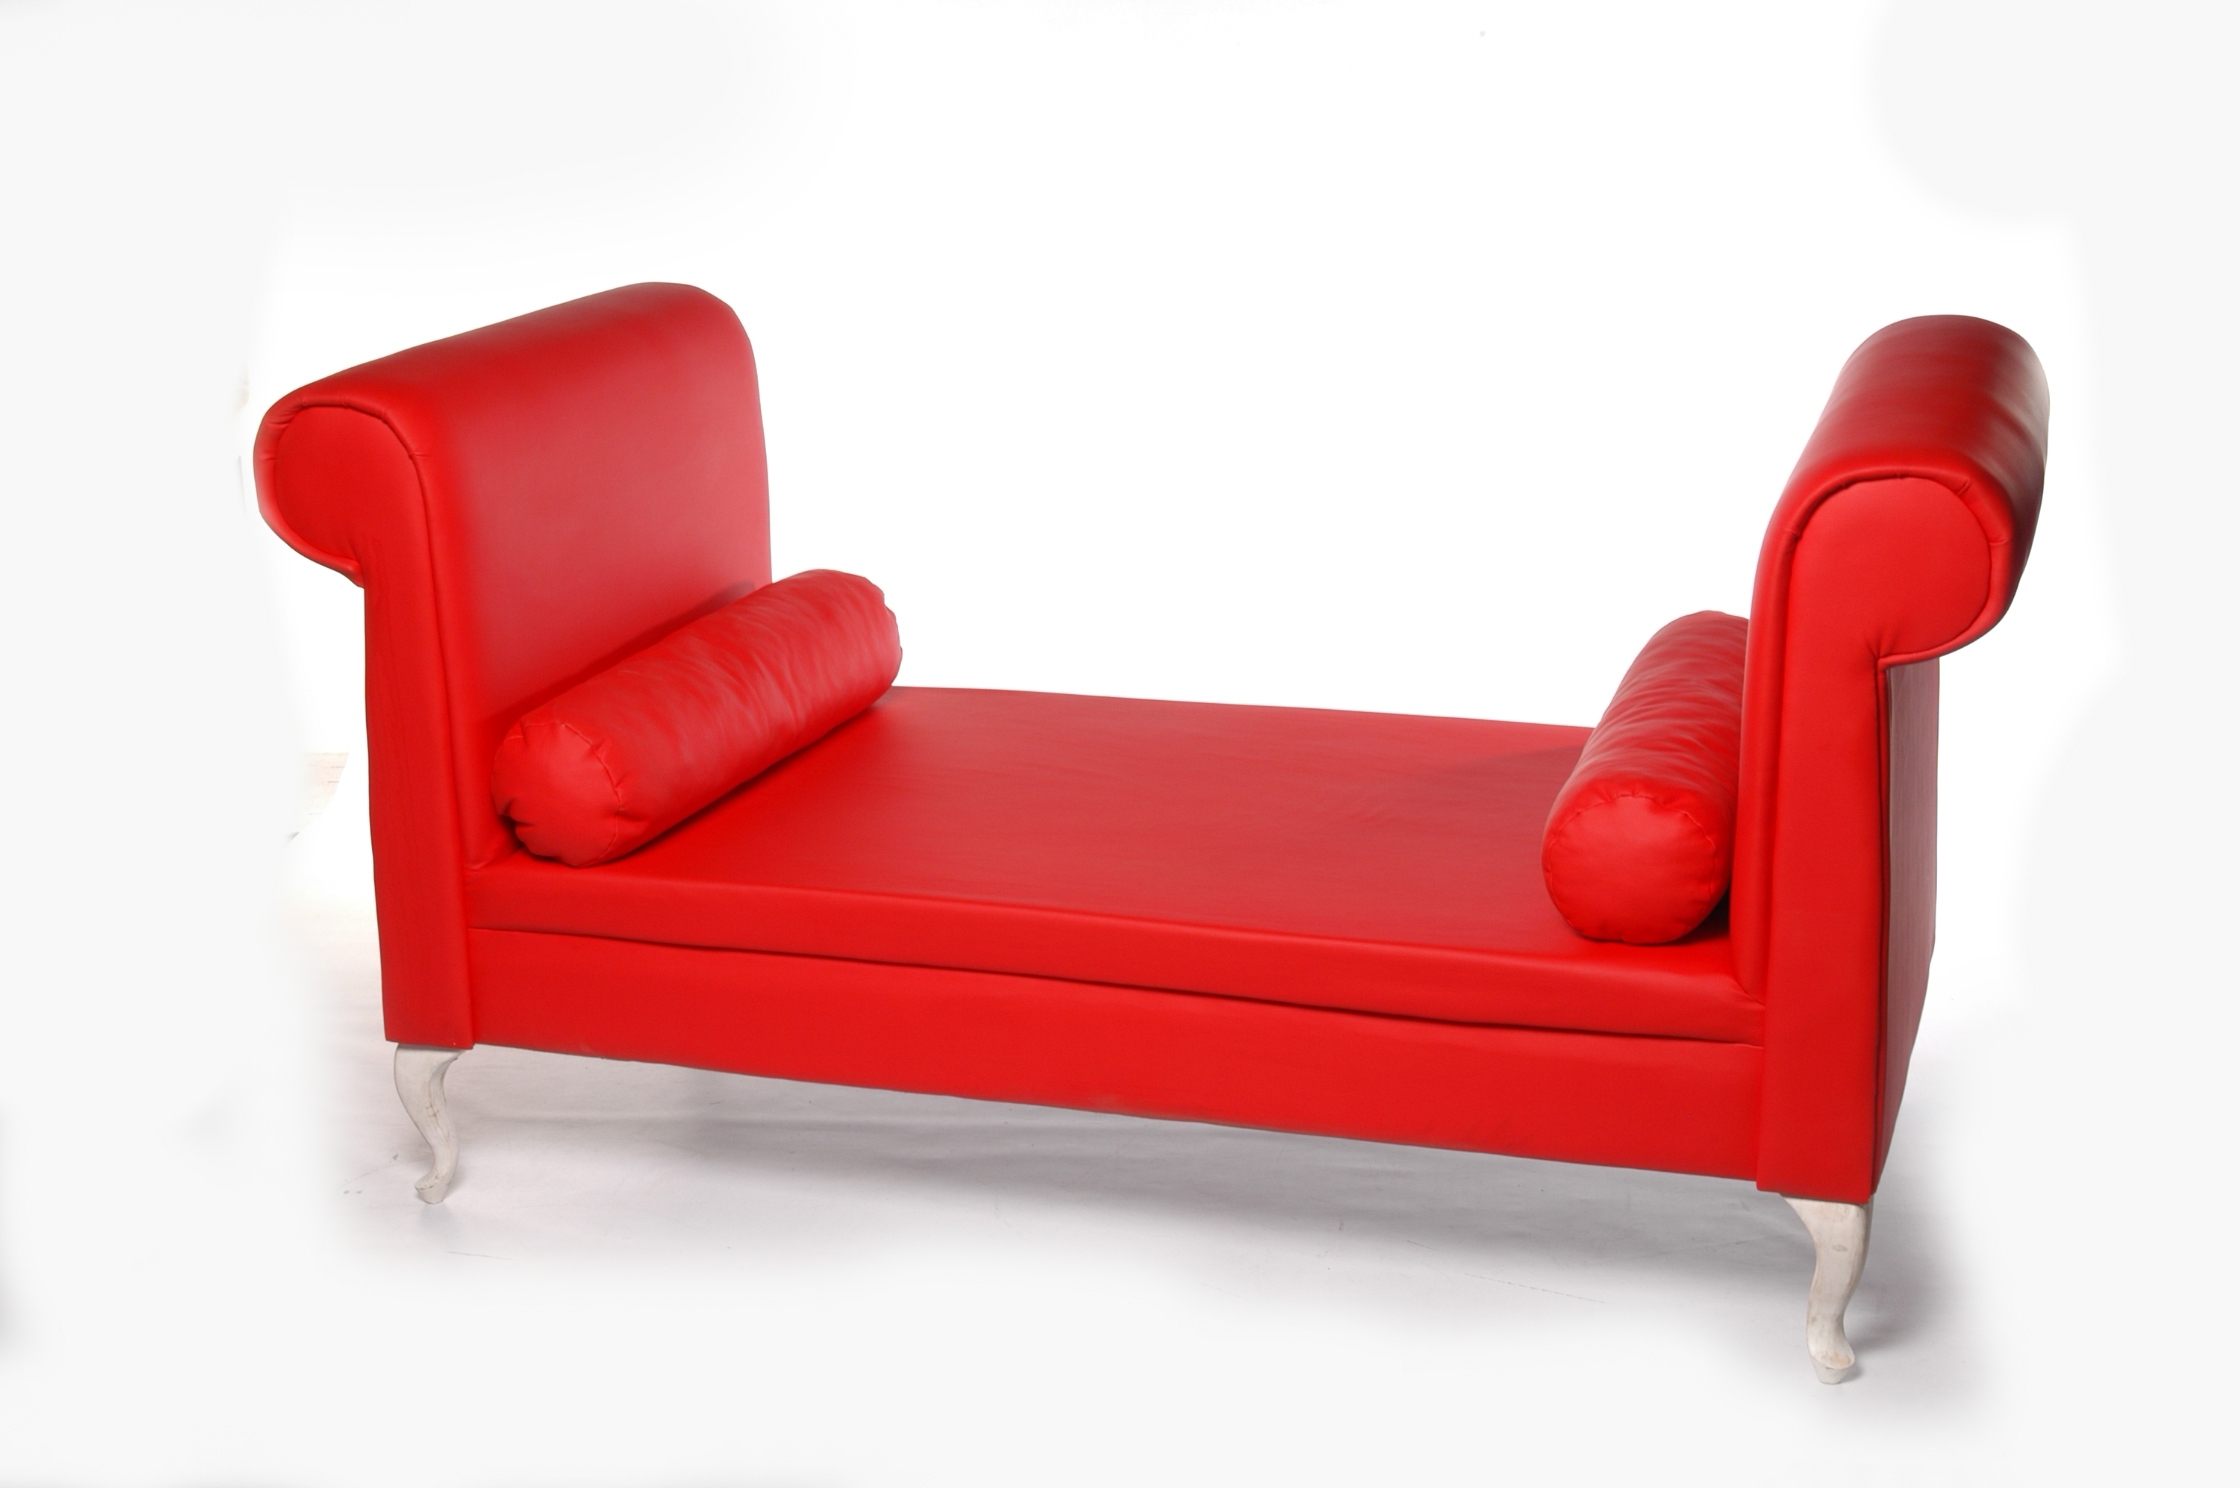 Really Exotic Designs And Decoration Red Chaise Lounge In The In Most Current Red Chaise Lounges (View 13 of 15)